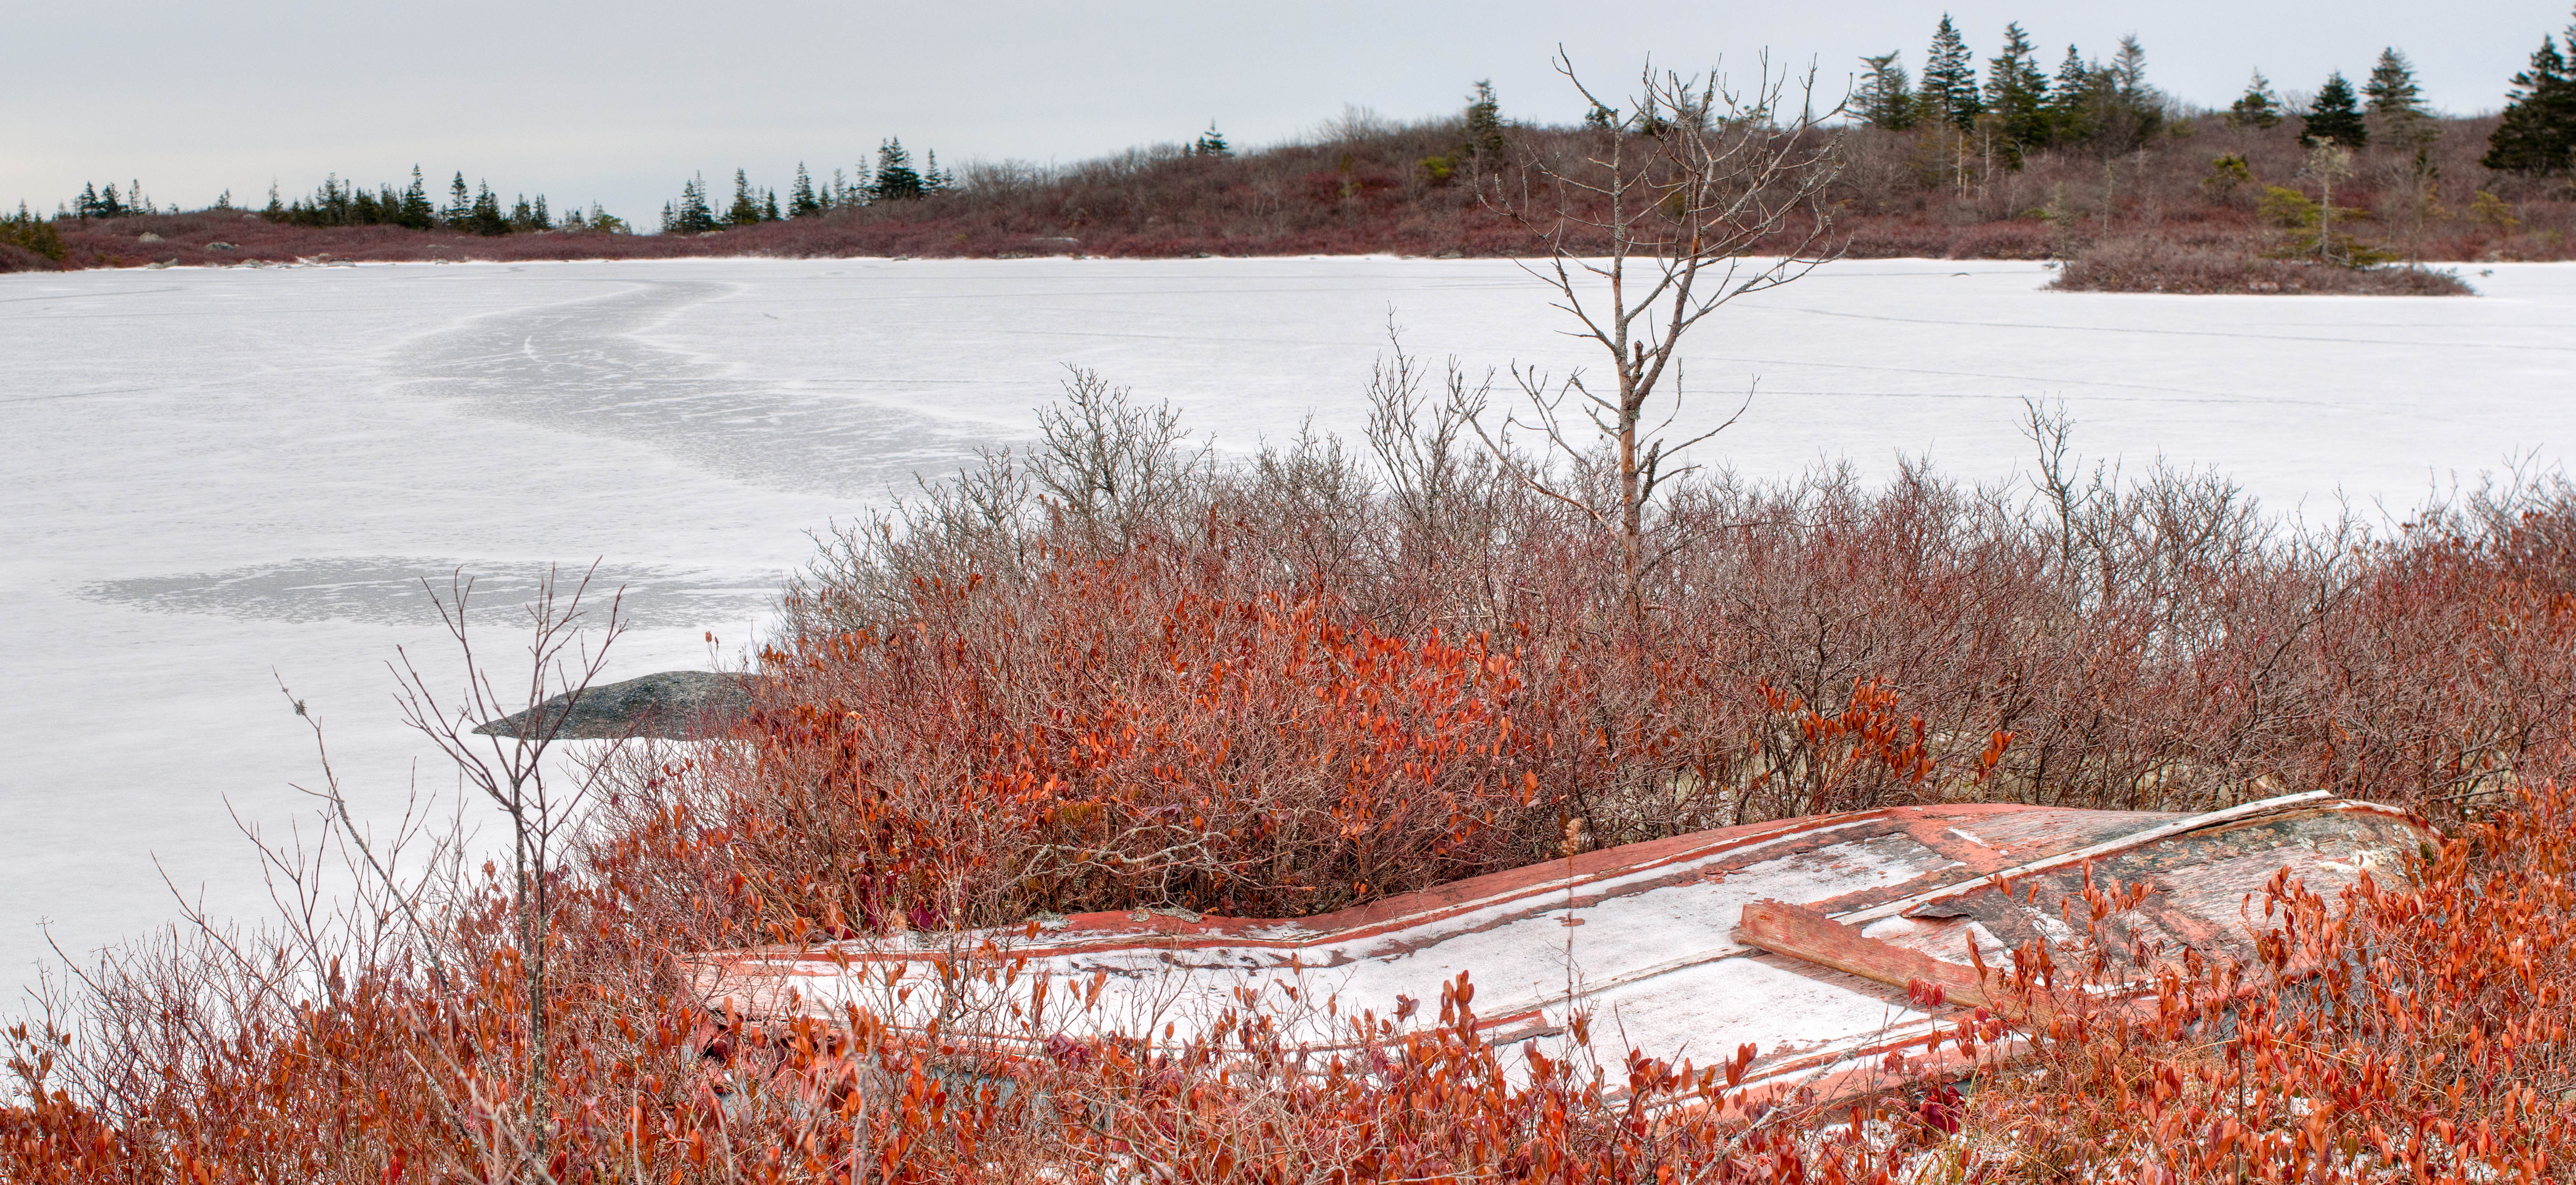 Road to Nowhere | Get Out In Guysborough County